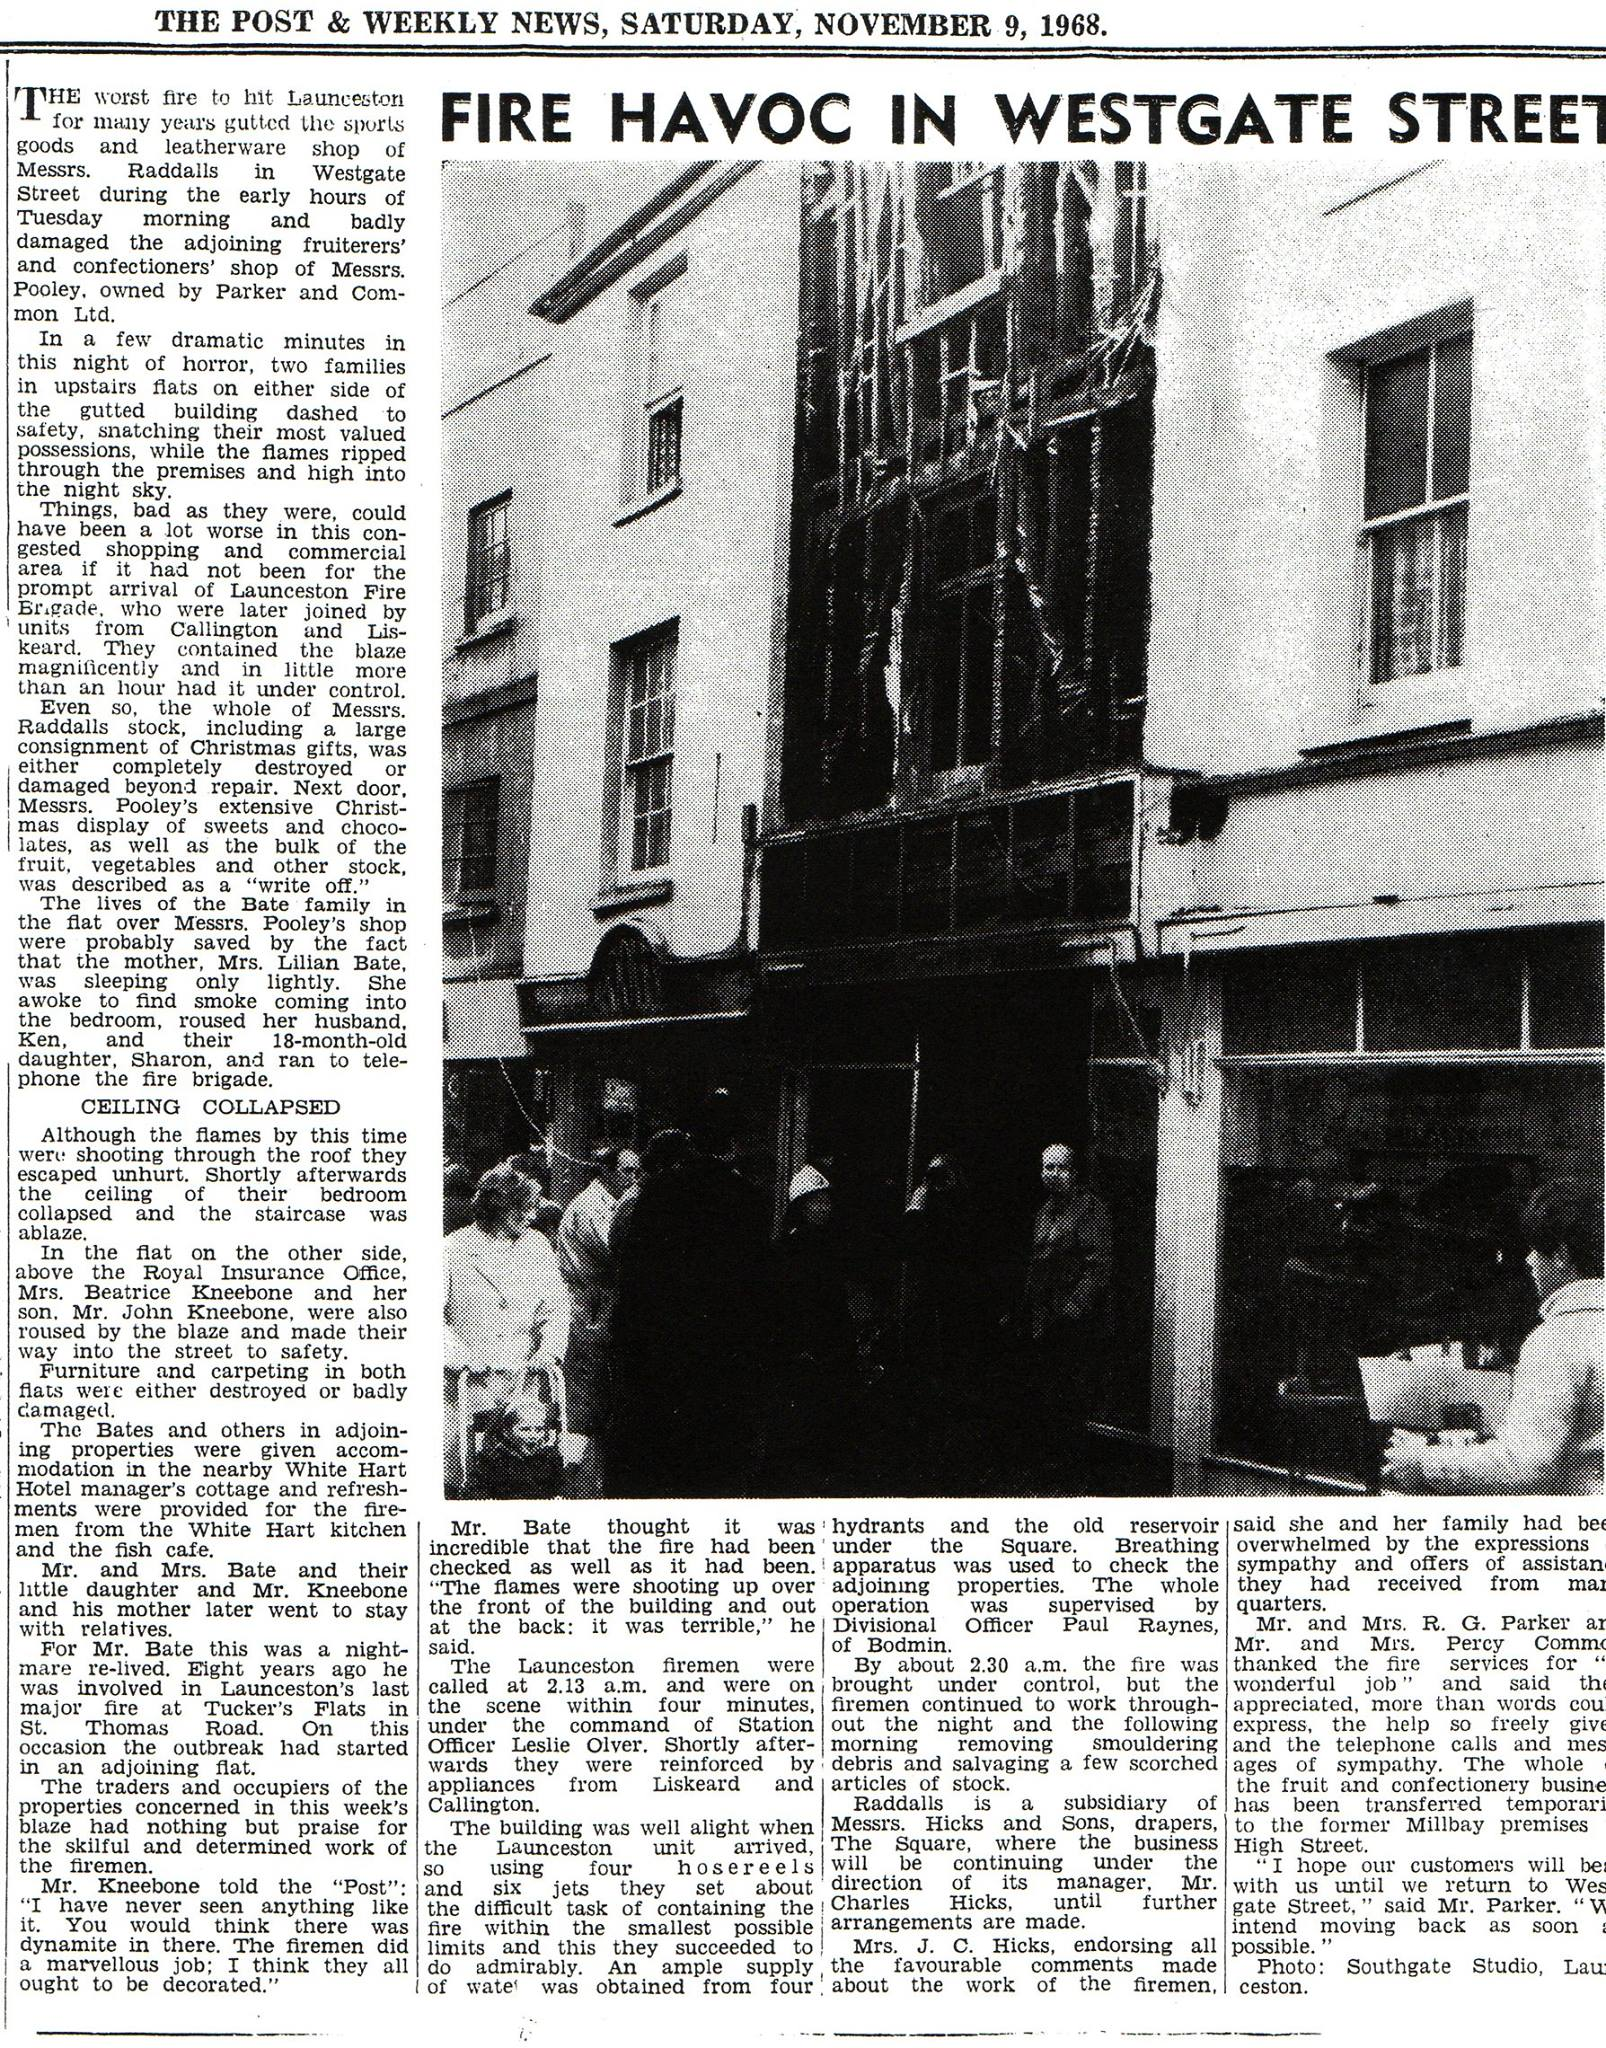 Article on the Raddalls fire in Westgate Street in November 1968.